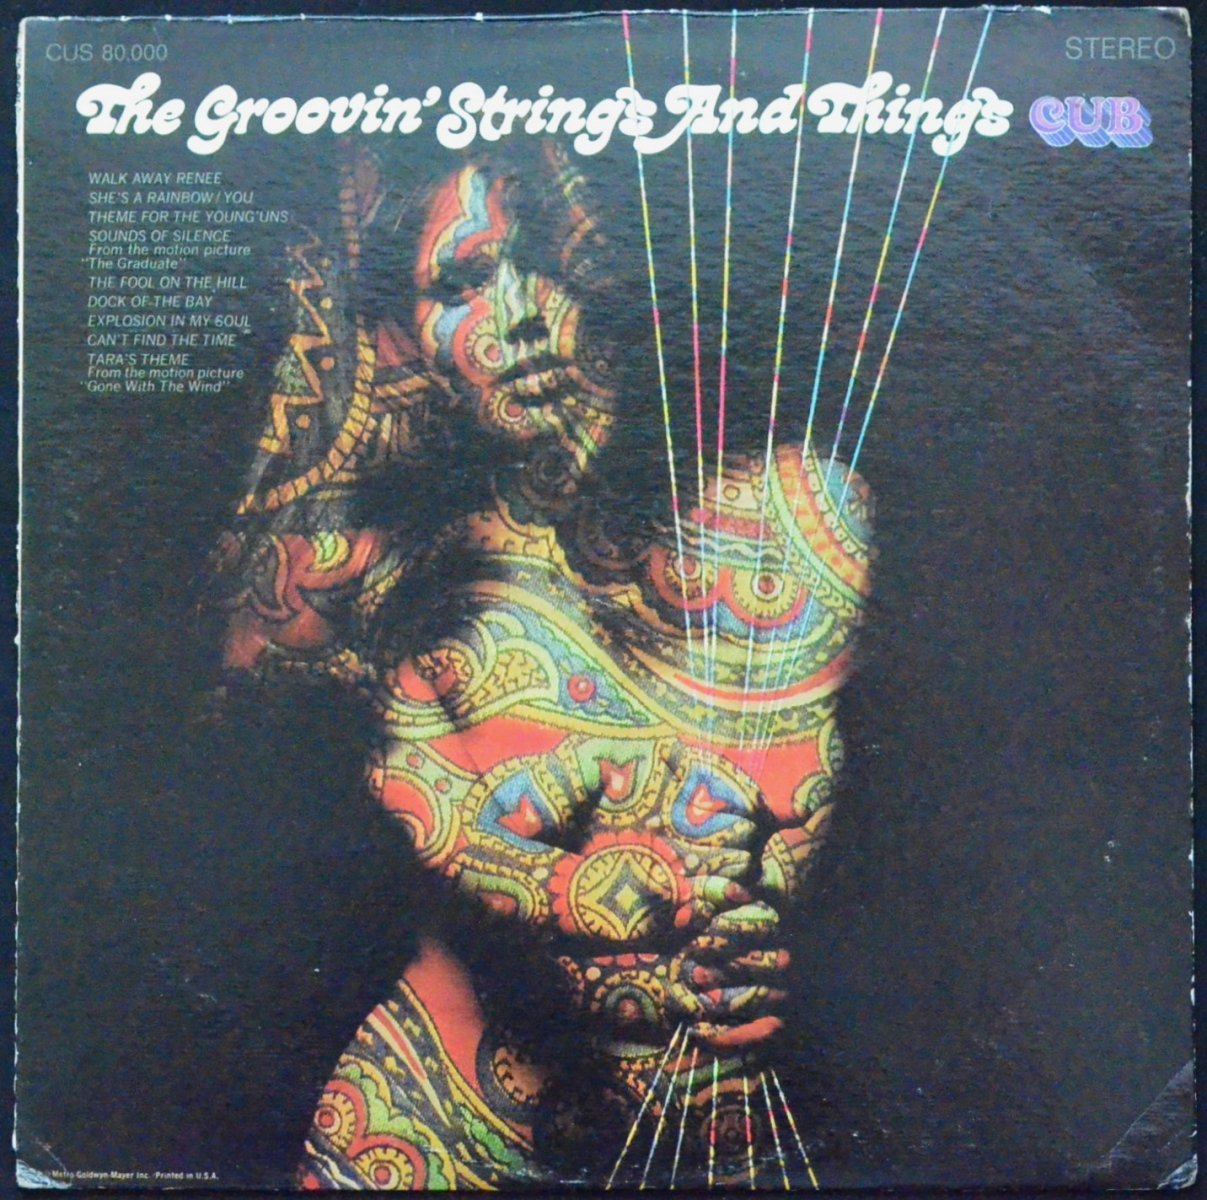 THE GROOVIN' STRINGS AND THINGS / THE GROOVIN' STRINGS AND THINGS (LP)